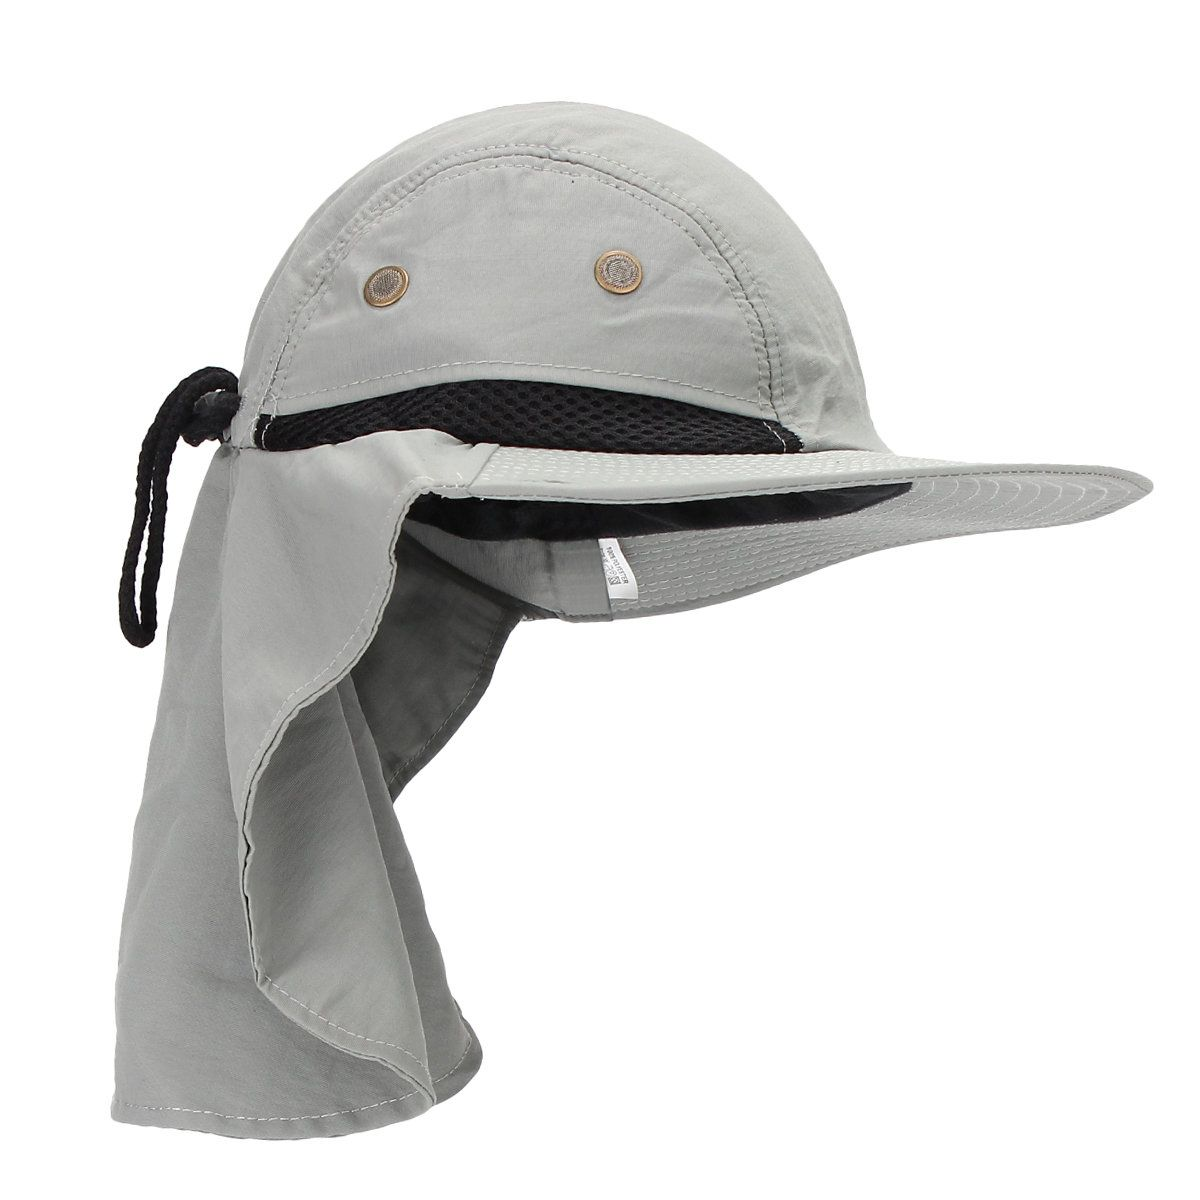 01f843c027c Men Women Boonie Snap Brim Ear Neck Cover Sun Flap Cap Hunting Fishing  Boating Hiking Hat